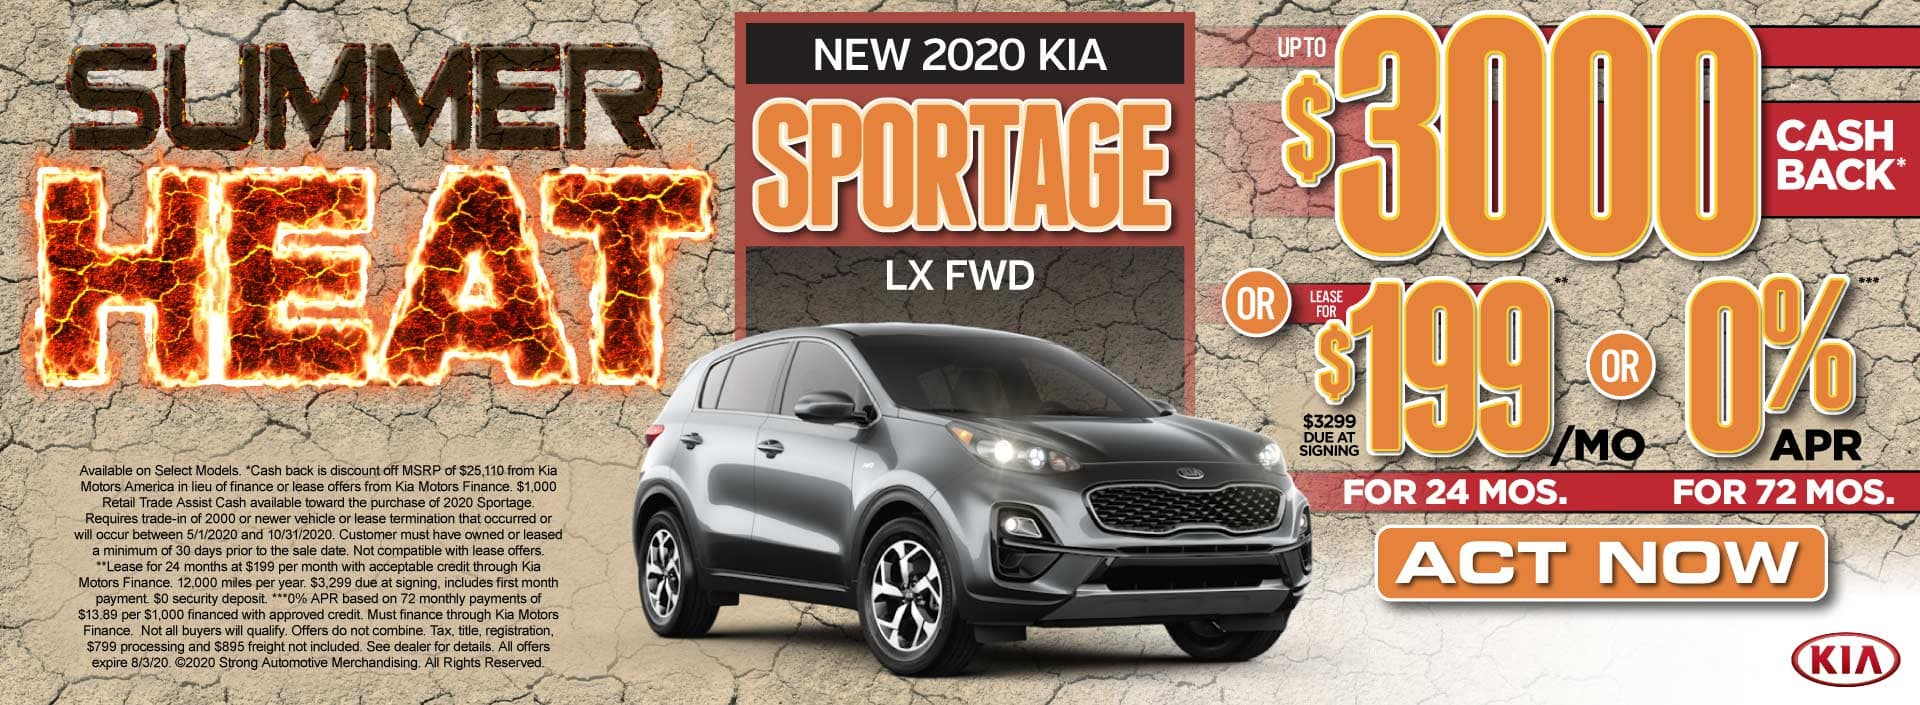 New 2020 Kia Sportage up to $3000 Cash Back or $199/mo - Act Now